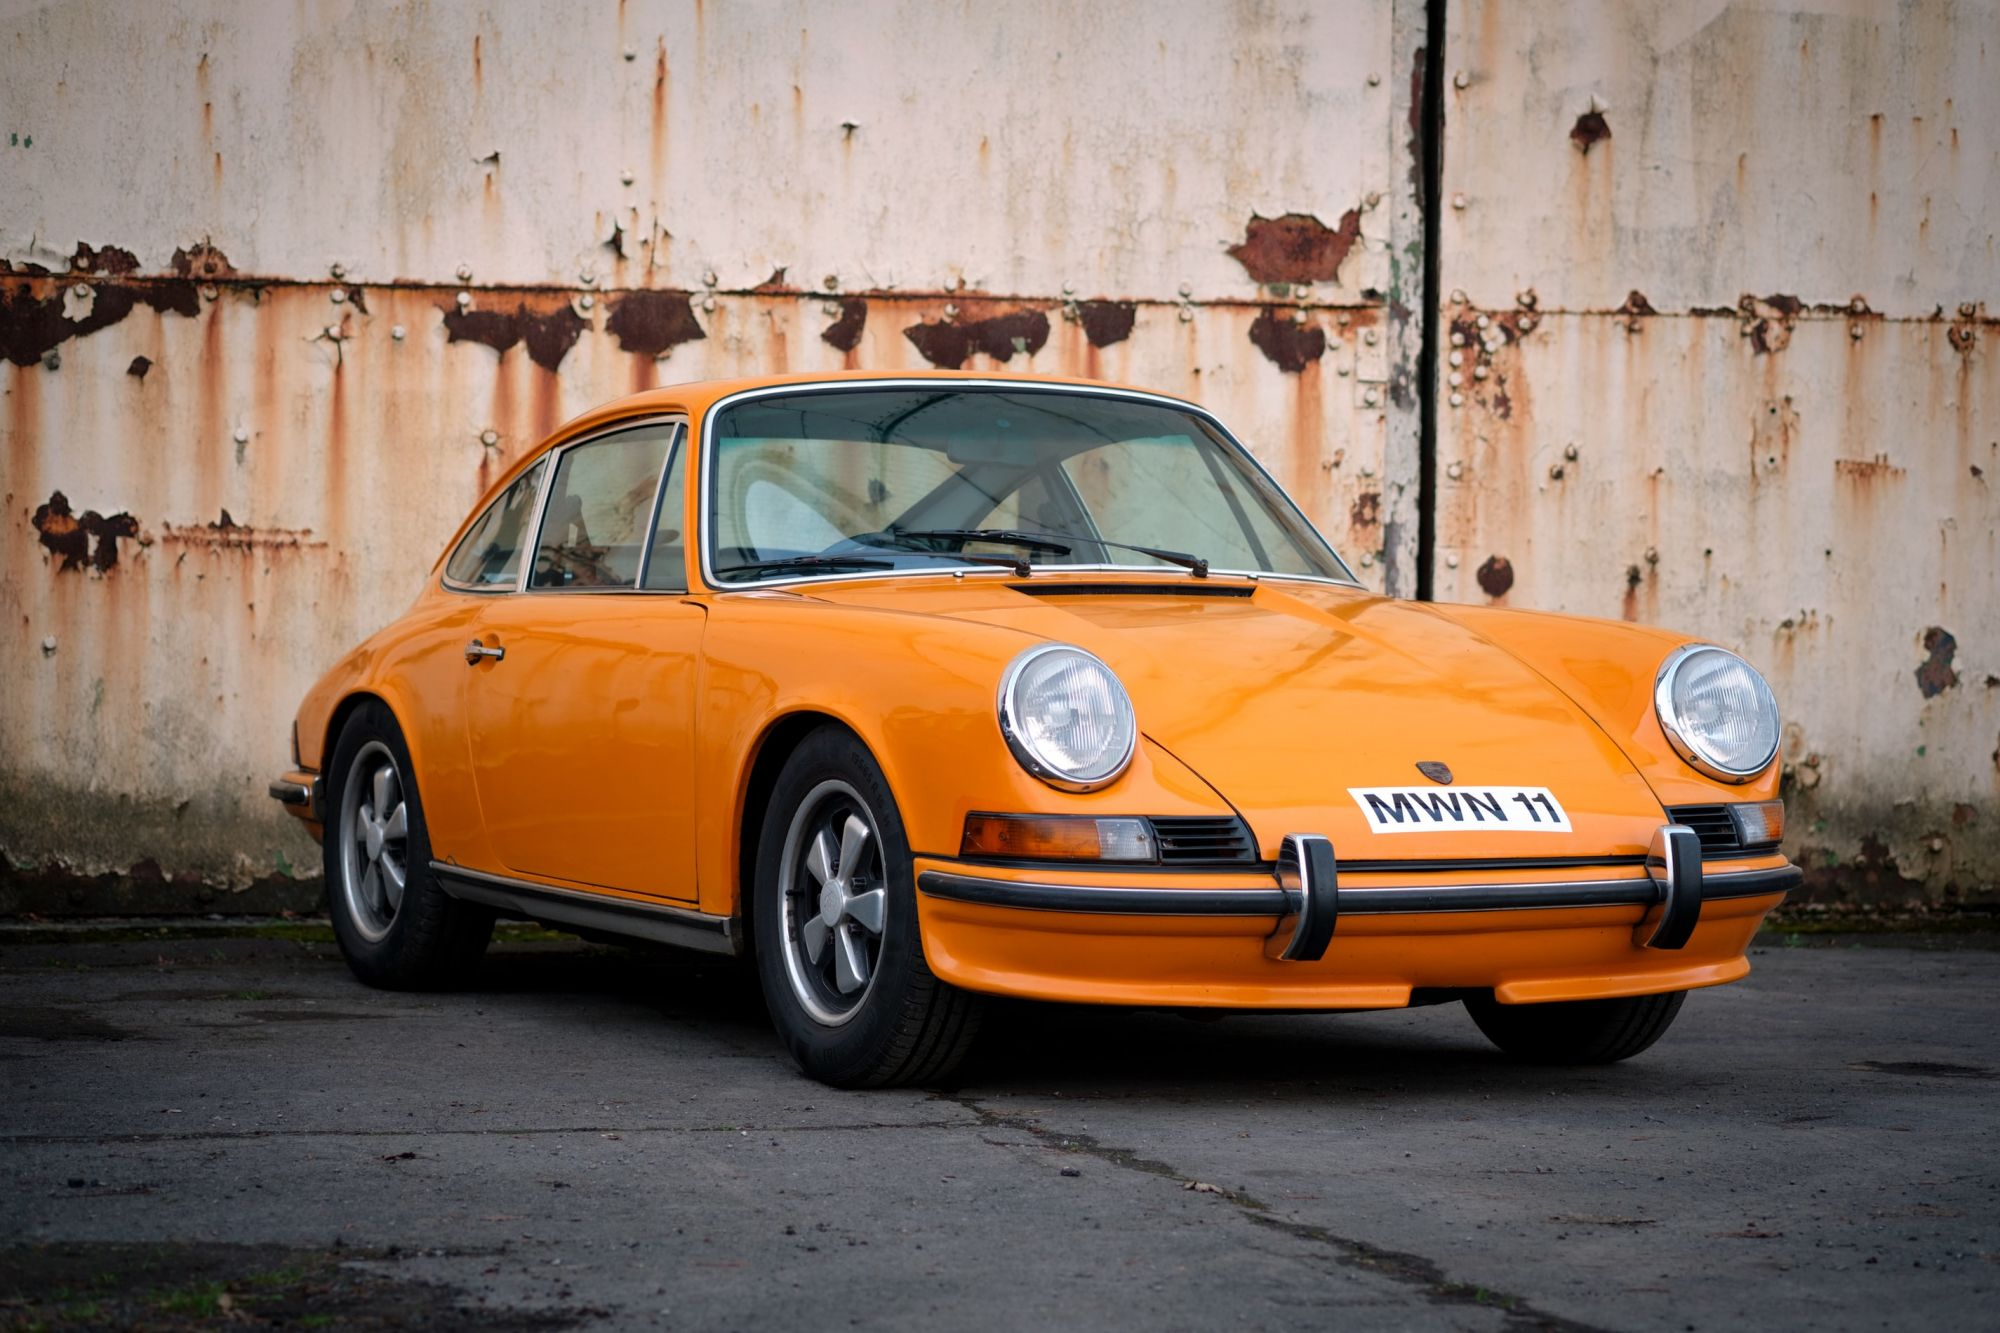 Automobile News: Maradona Fans Can Buy Themselves A Porsche Driven By The Sports Legend